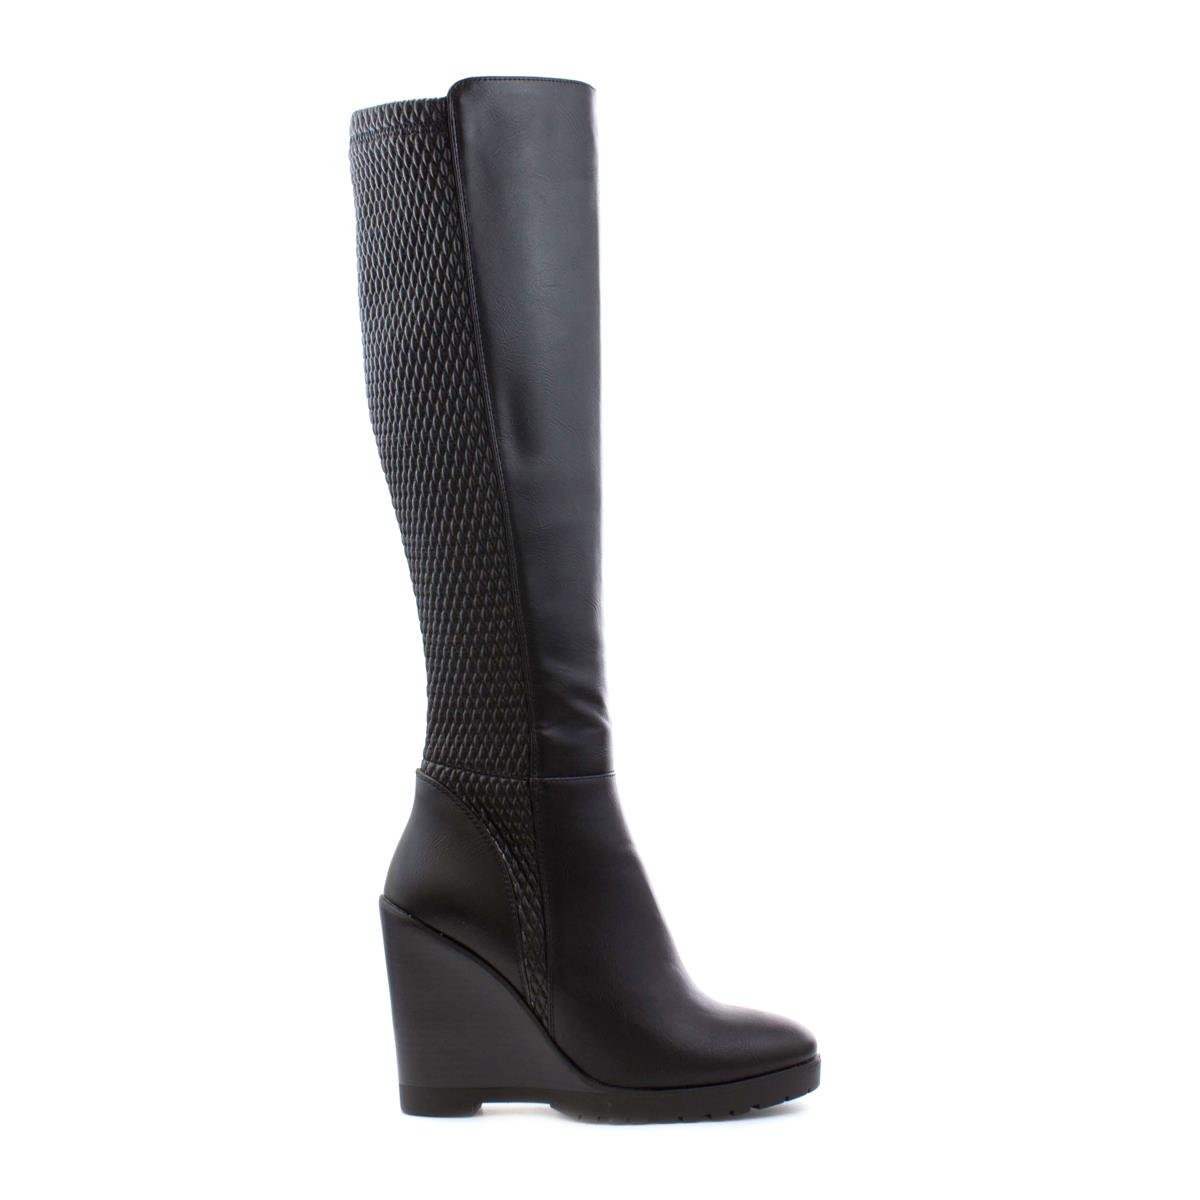 5a455a63add Lilley Womens Black Elasticated Back Wedge Boot - Size 8 UK - Black   Amazon.co.uk  Shoes   Bags